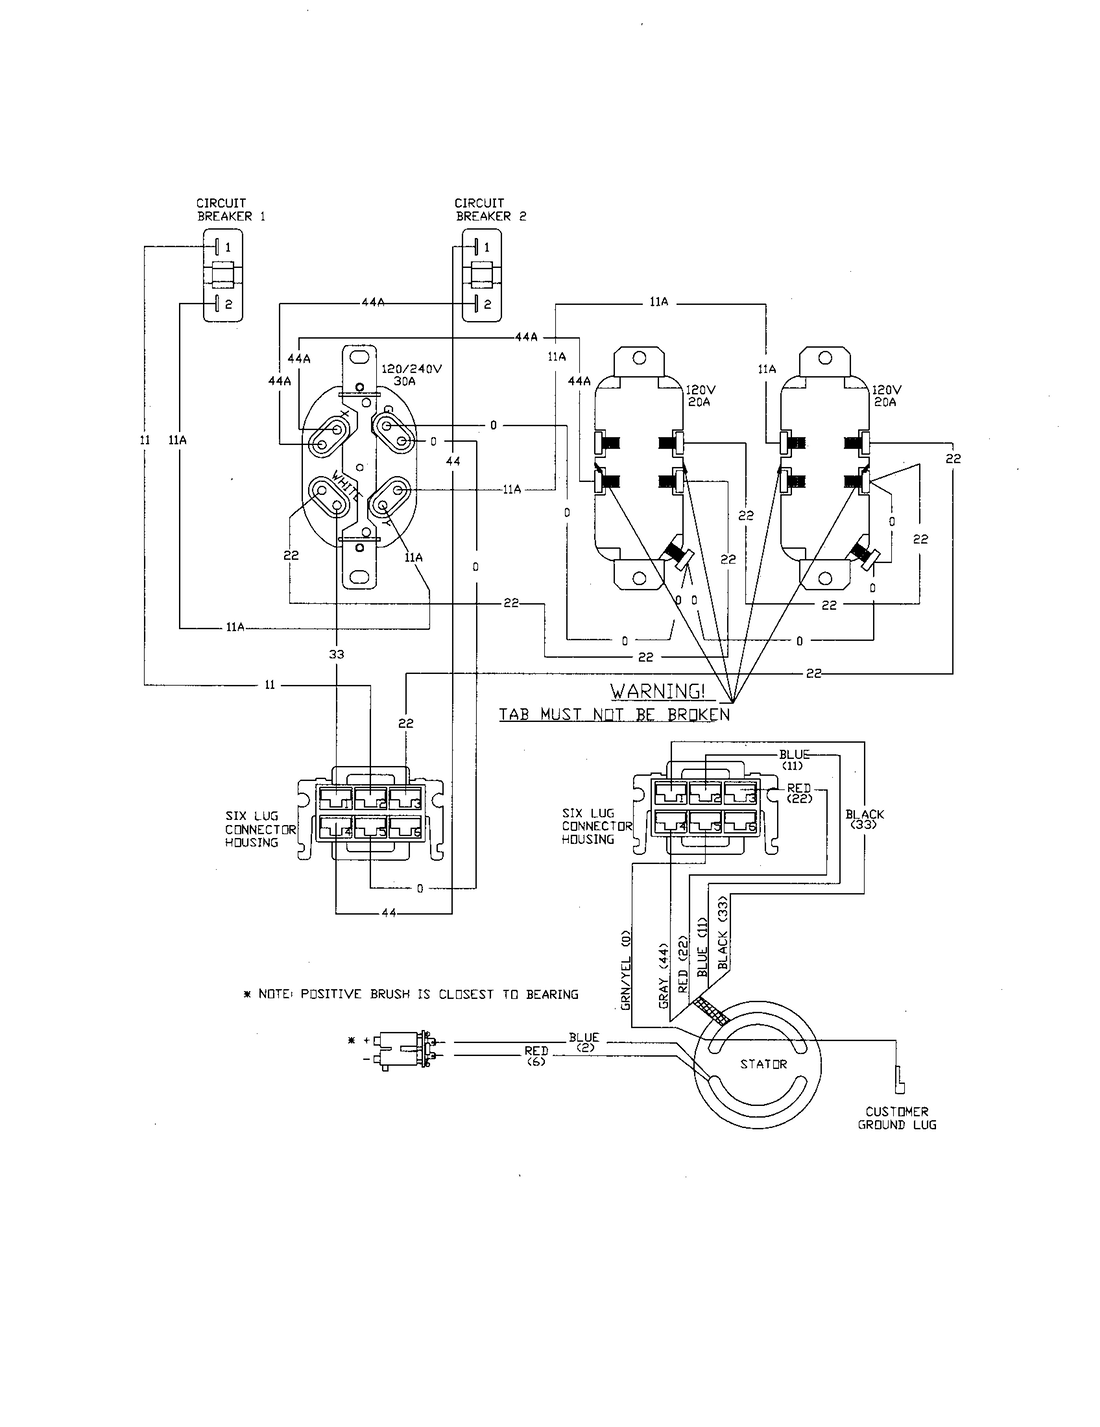 Ac Drawing At Free For Personal Use Of Power Wiring 1100x1427 Generator Diagram Components